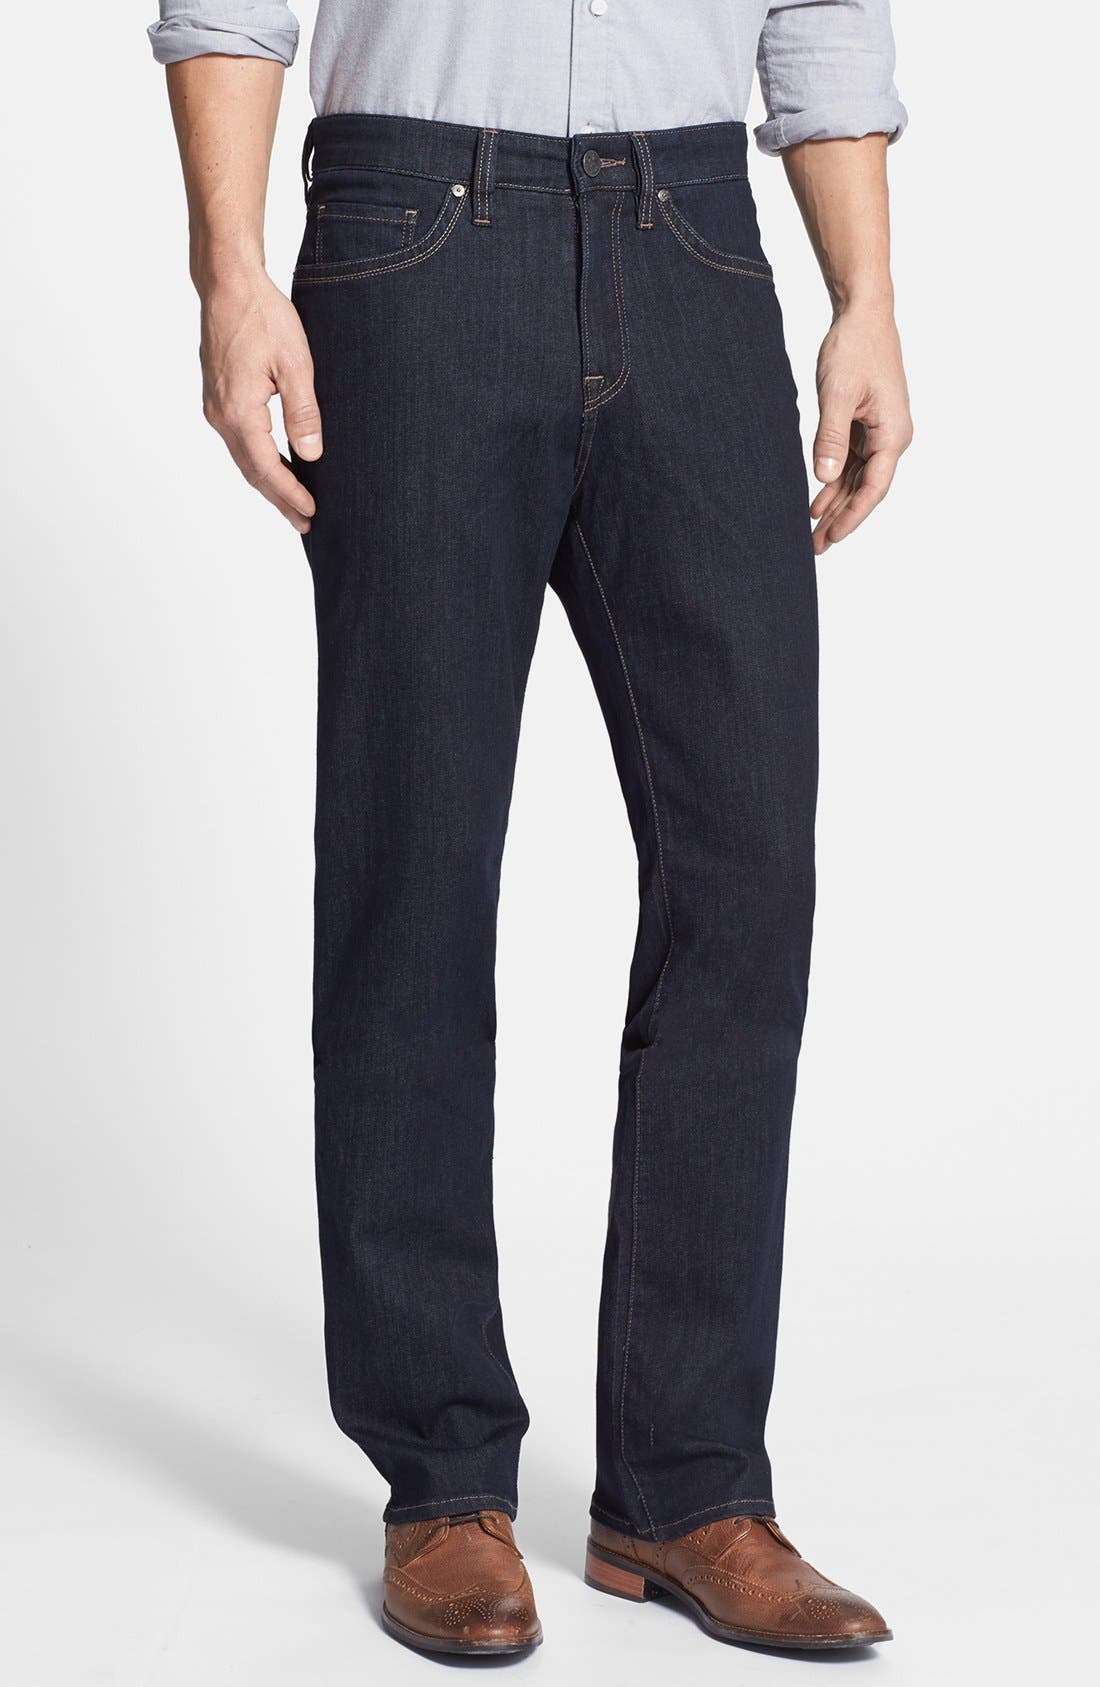 34 HERITAGE,                             'Charisma' Classic Relaxed Fit Jeans,                             Main thumbnail 1, color,                             MIDNIGHT CASHMERE